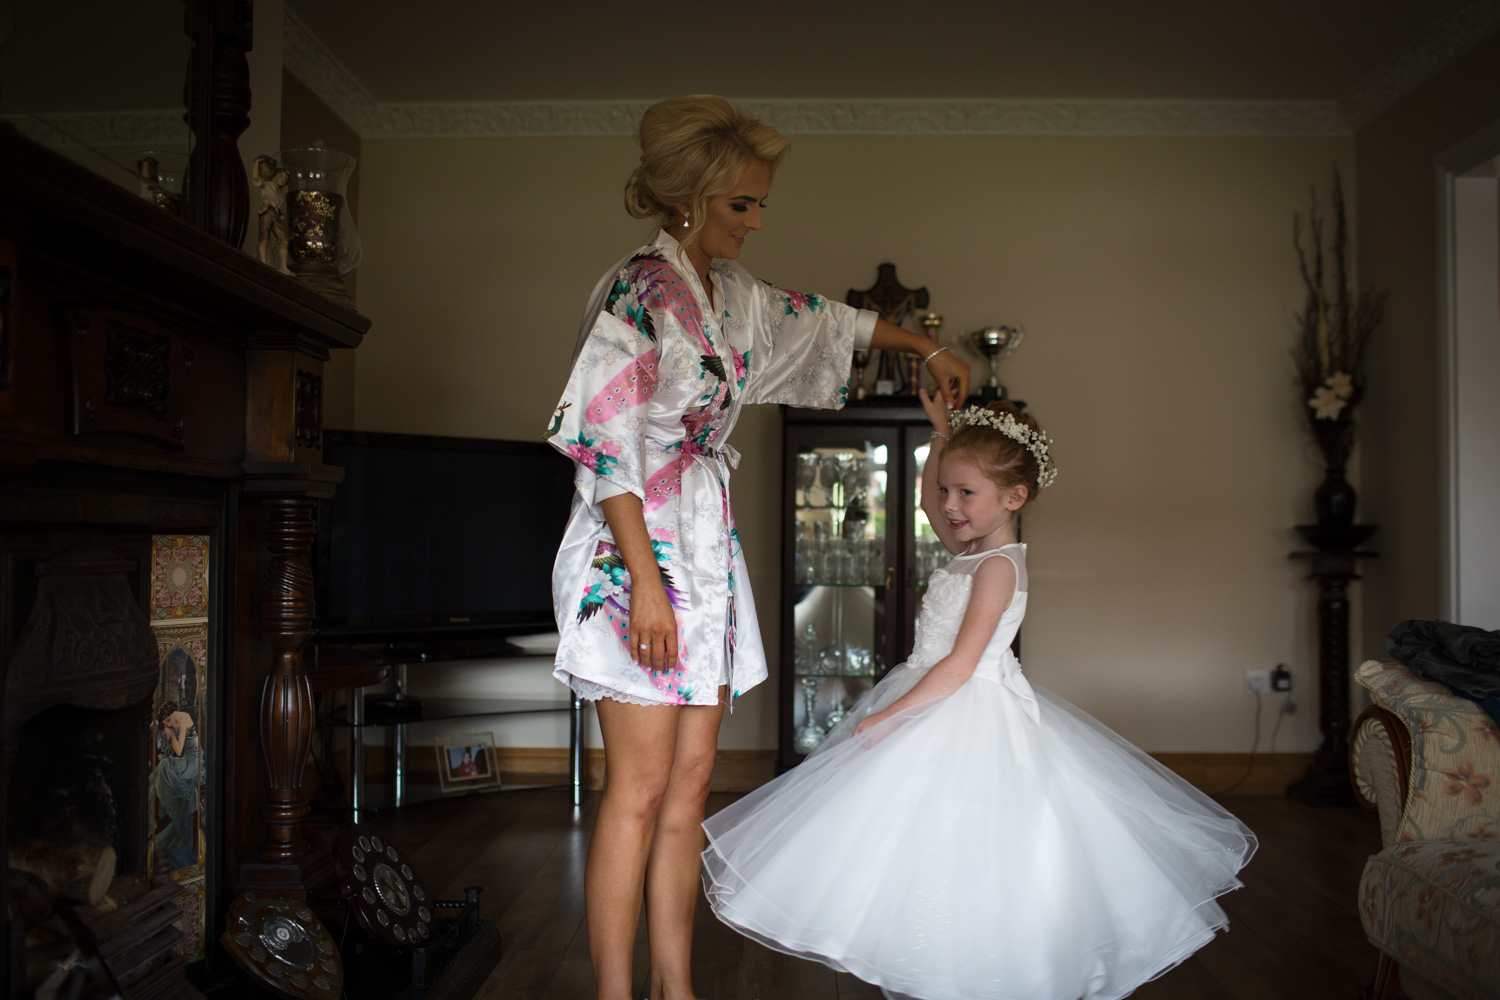 Mark_Barnes_wedding_photographer_Northern_Ireland_Wedding_photography_Carlingford_Four_Seasons_Wedding-11.jpg